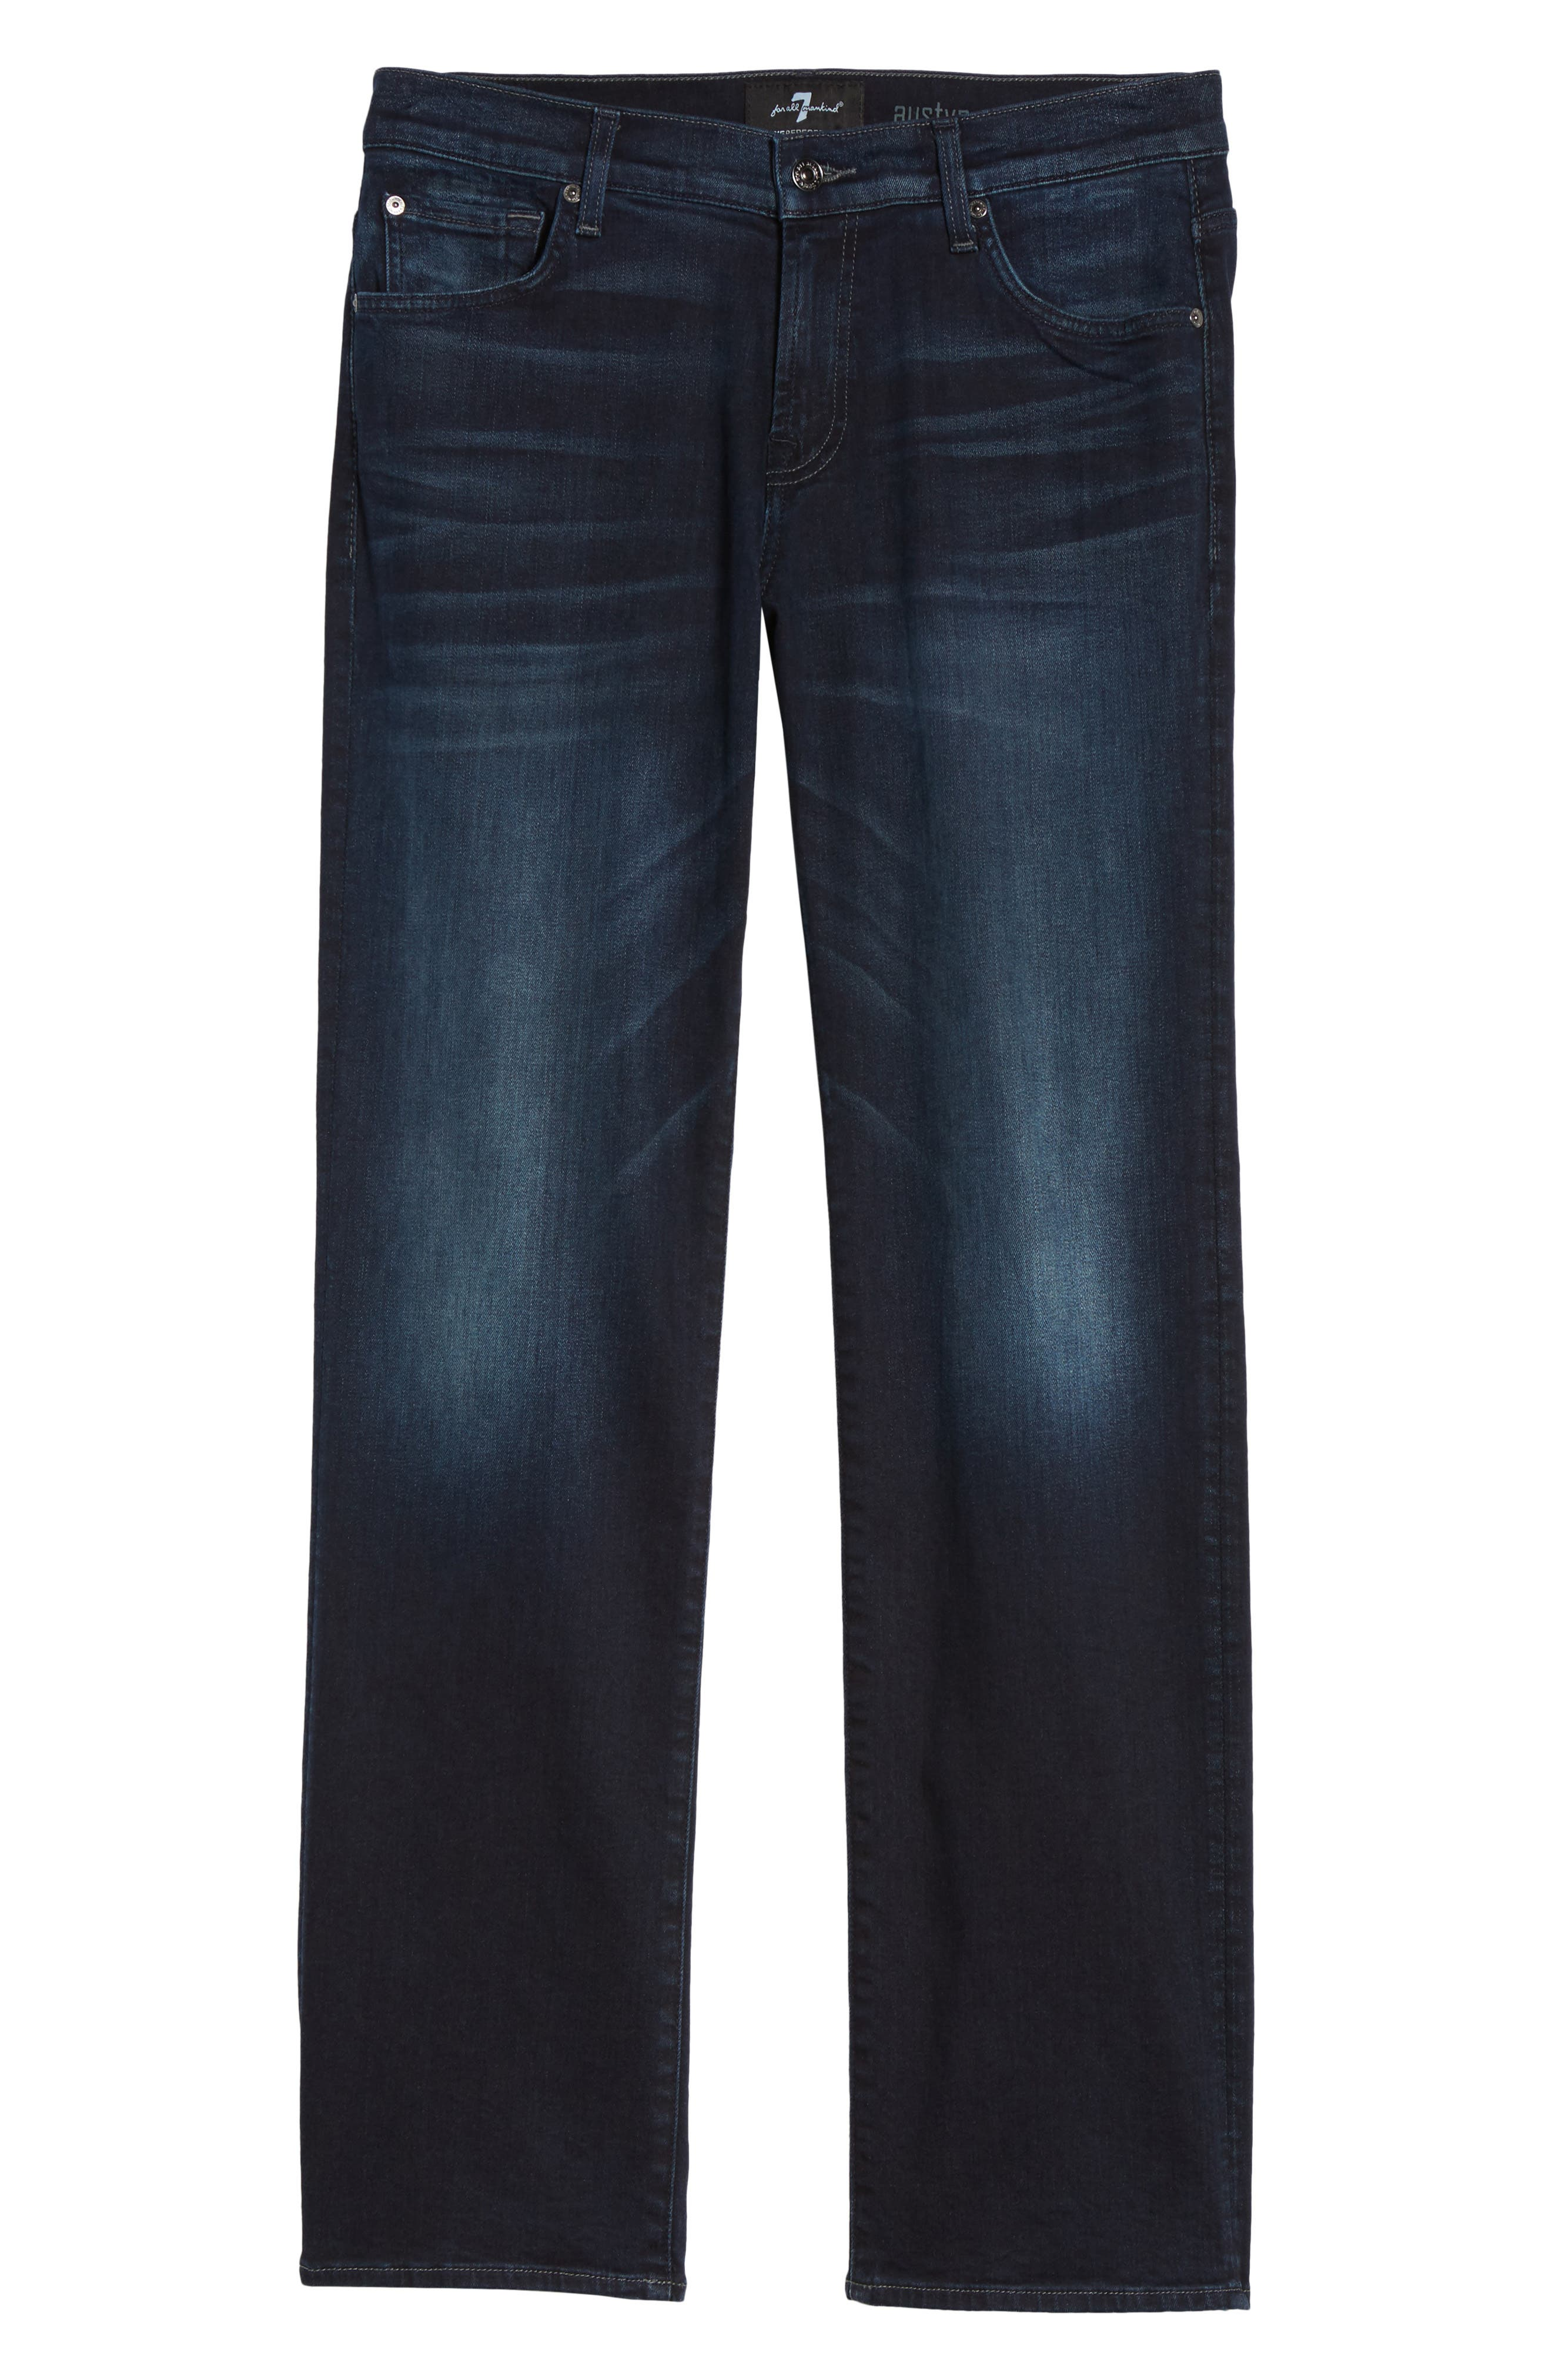 Austyn Relaxed Fit Jeans,                             Alternate thumbnail 6, color,